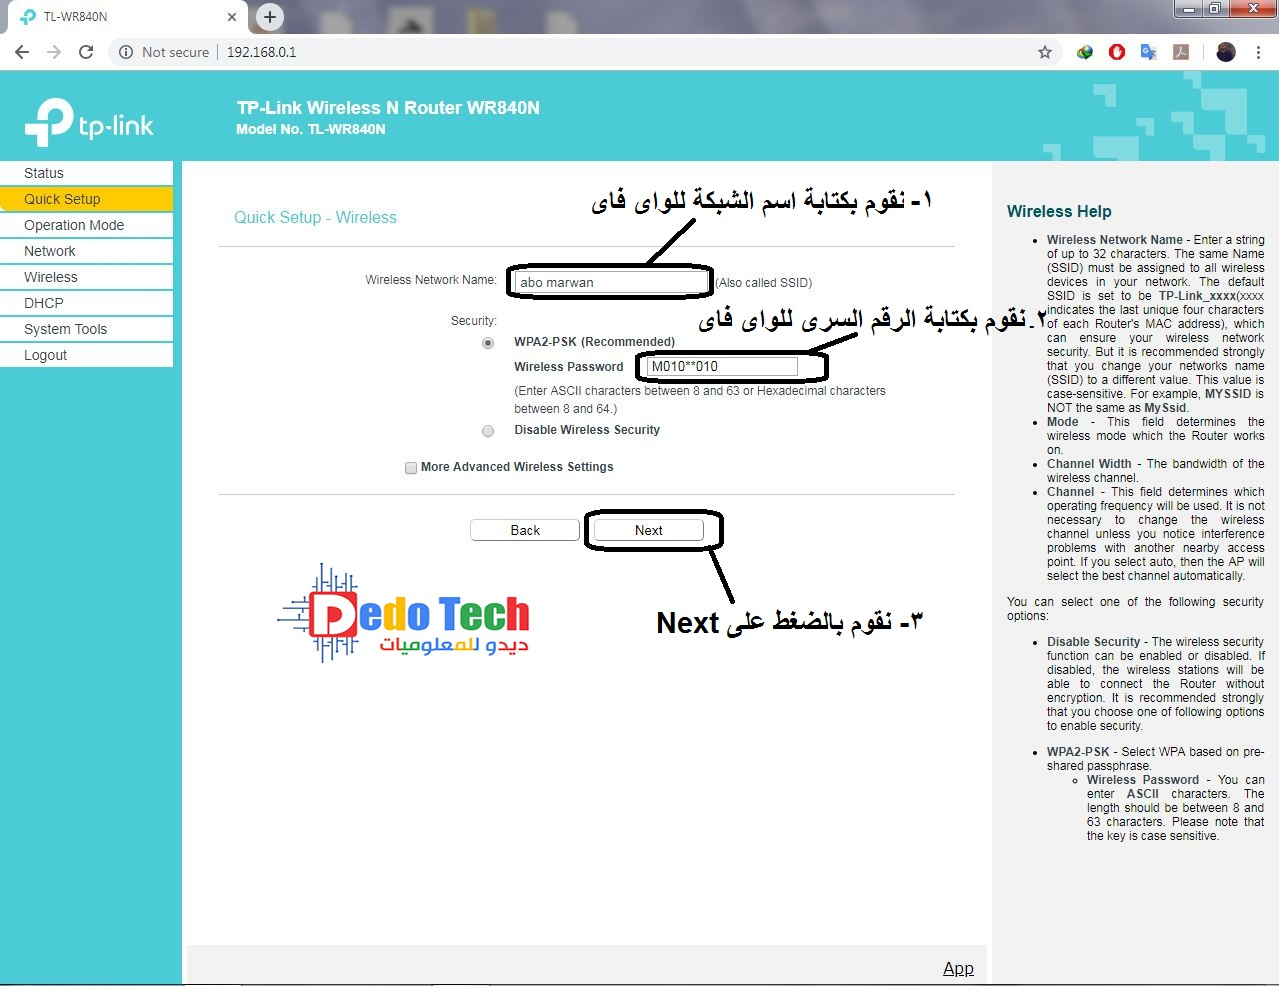 تغيير اسم الواى فاى ورقم سر الواى فاى لراوتر تى بى لينك tp link wireless n router wr840n